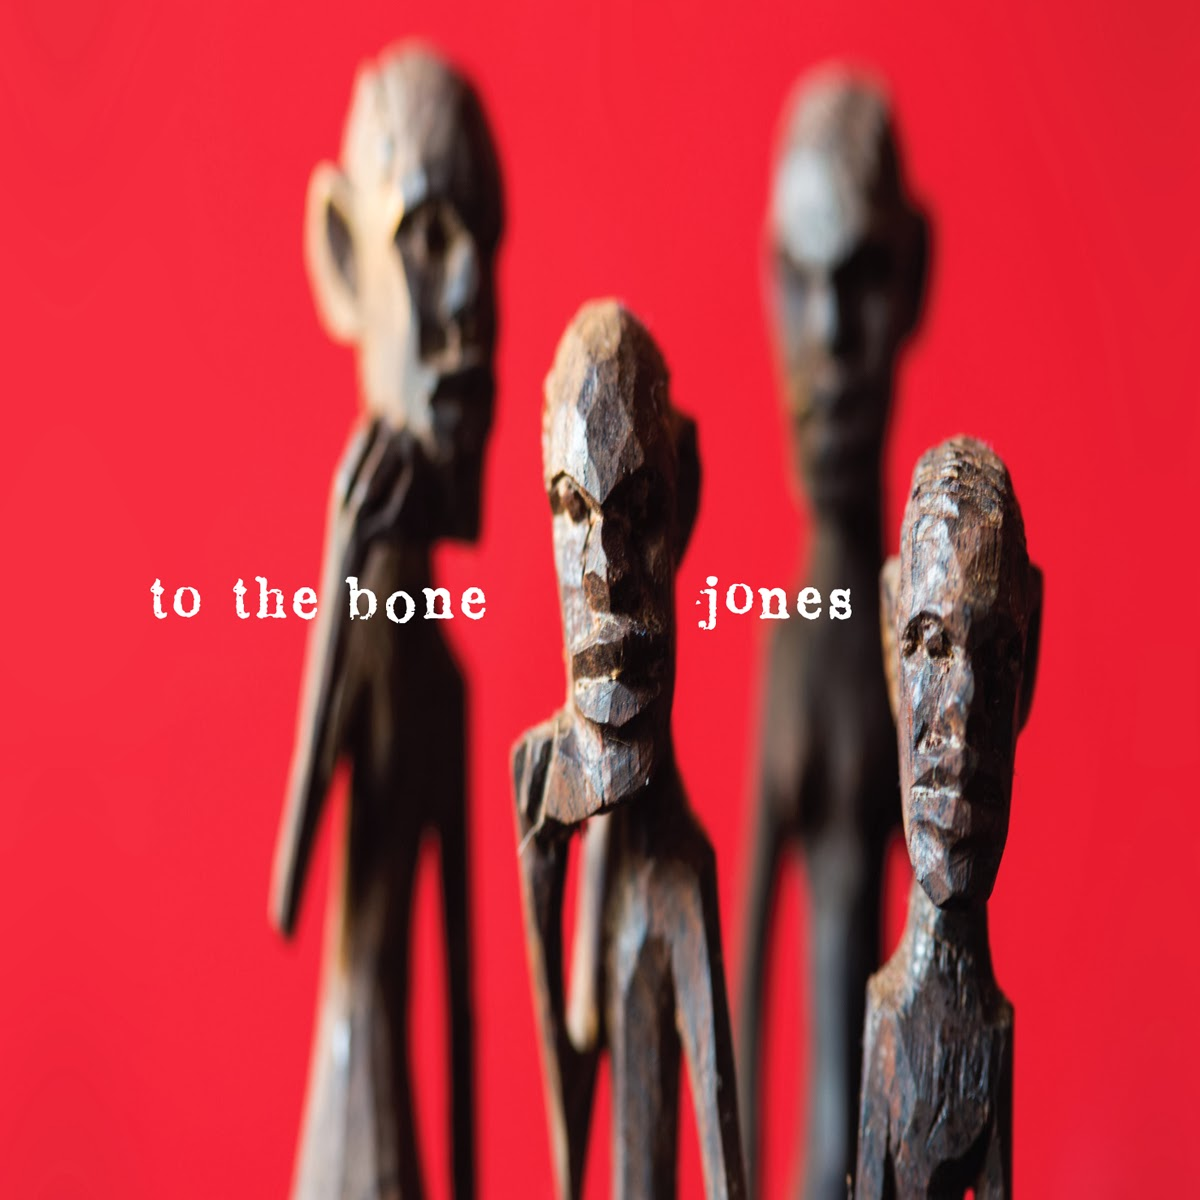 'To the Bone' The New Album by Jones